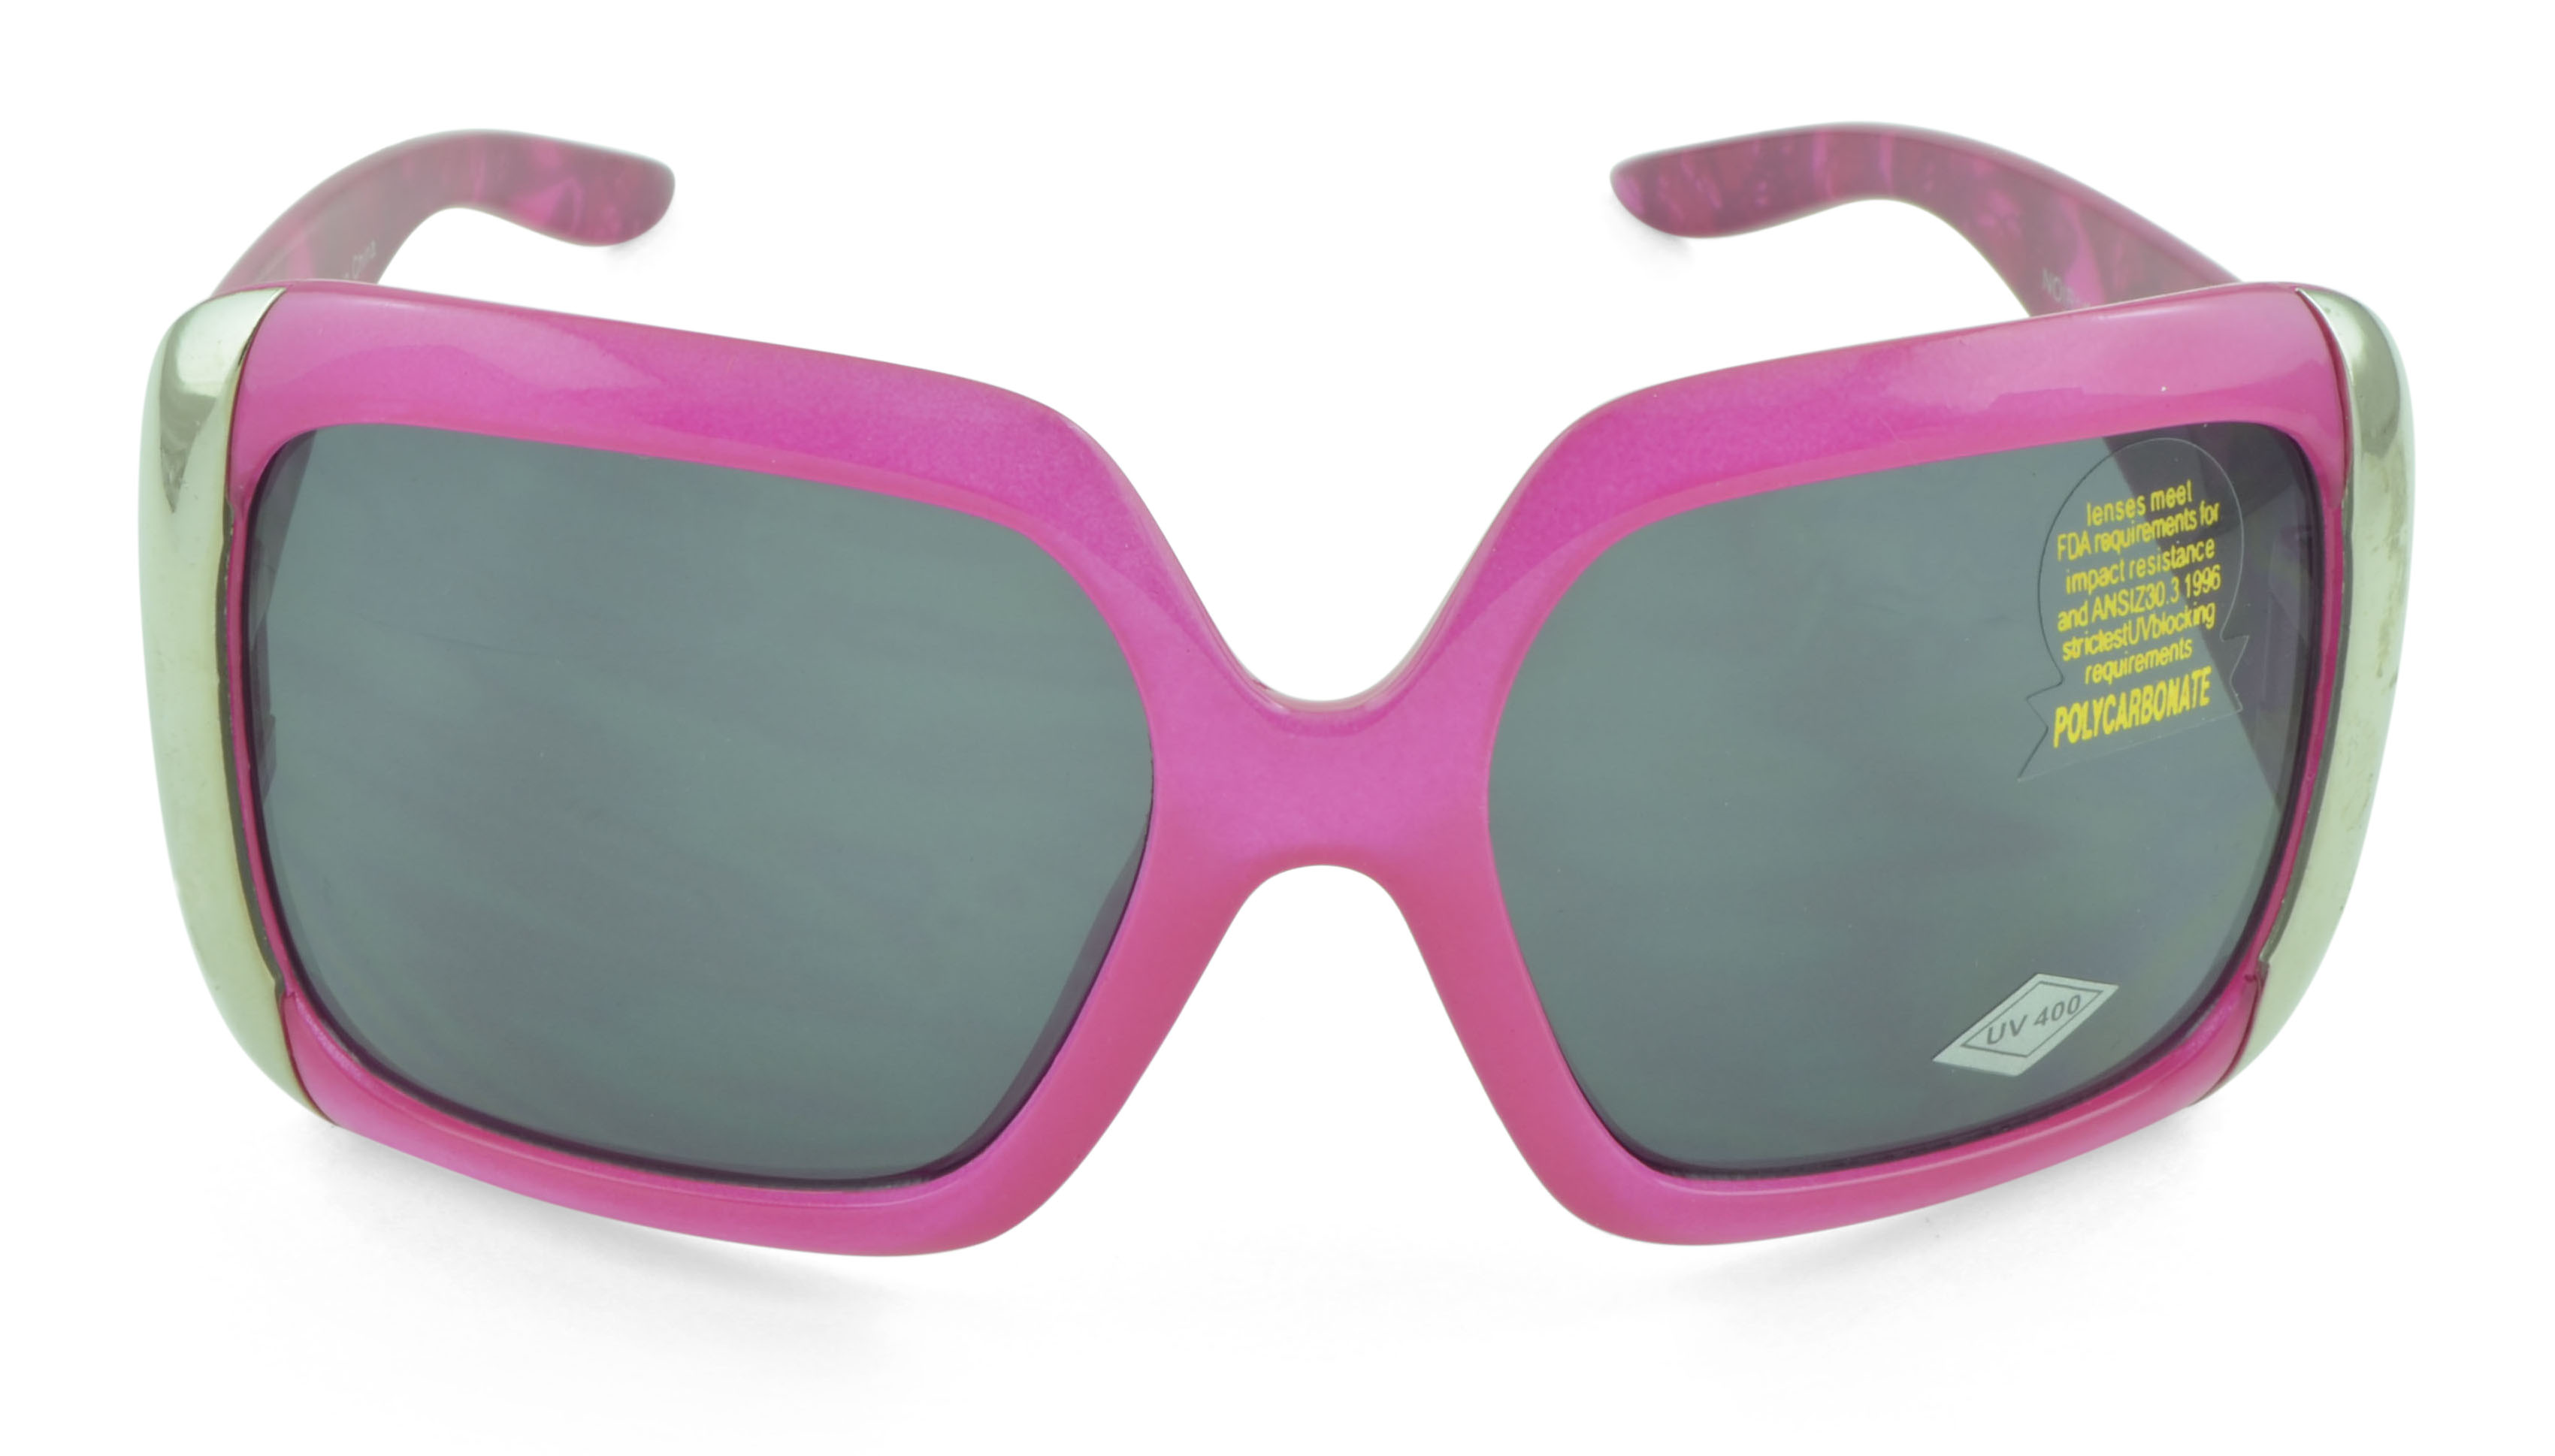 Belle Donne- Oversize Large Women's Fashion Celebrity Sunglasses - Clear Butterfly Oversized Sunglasses for Women and Girls - Trendy Ladies Sunglasses - UV Protection - Polarized - Pink